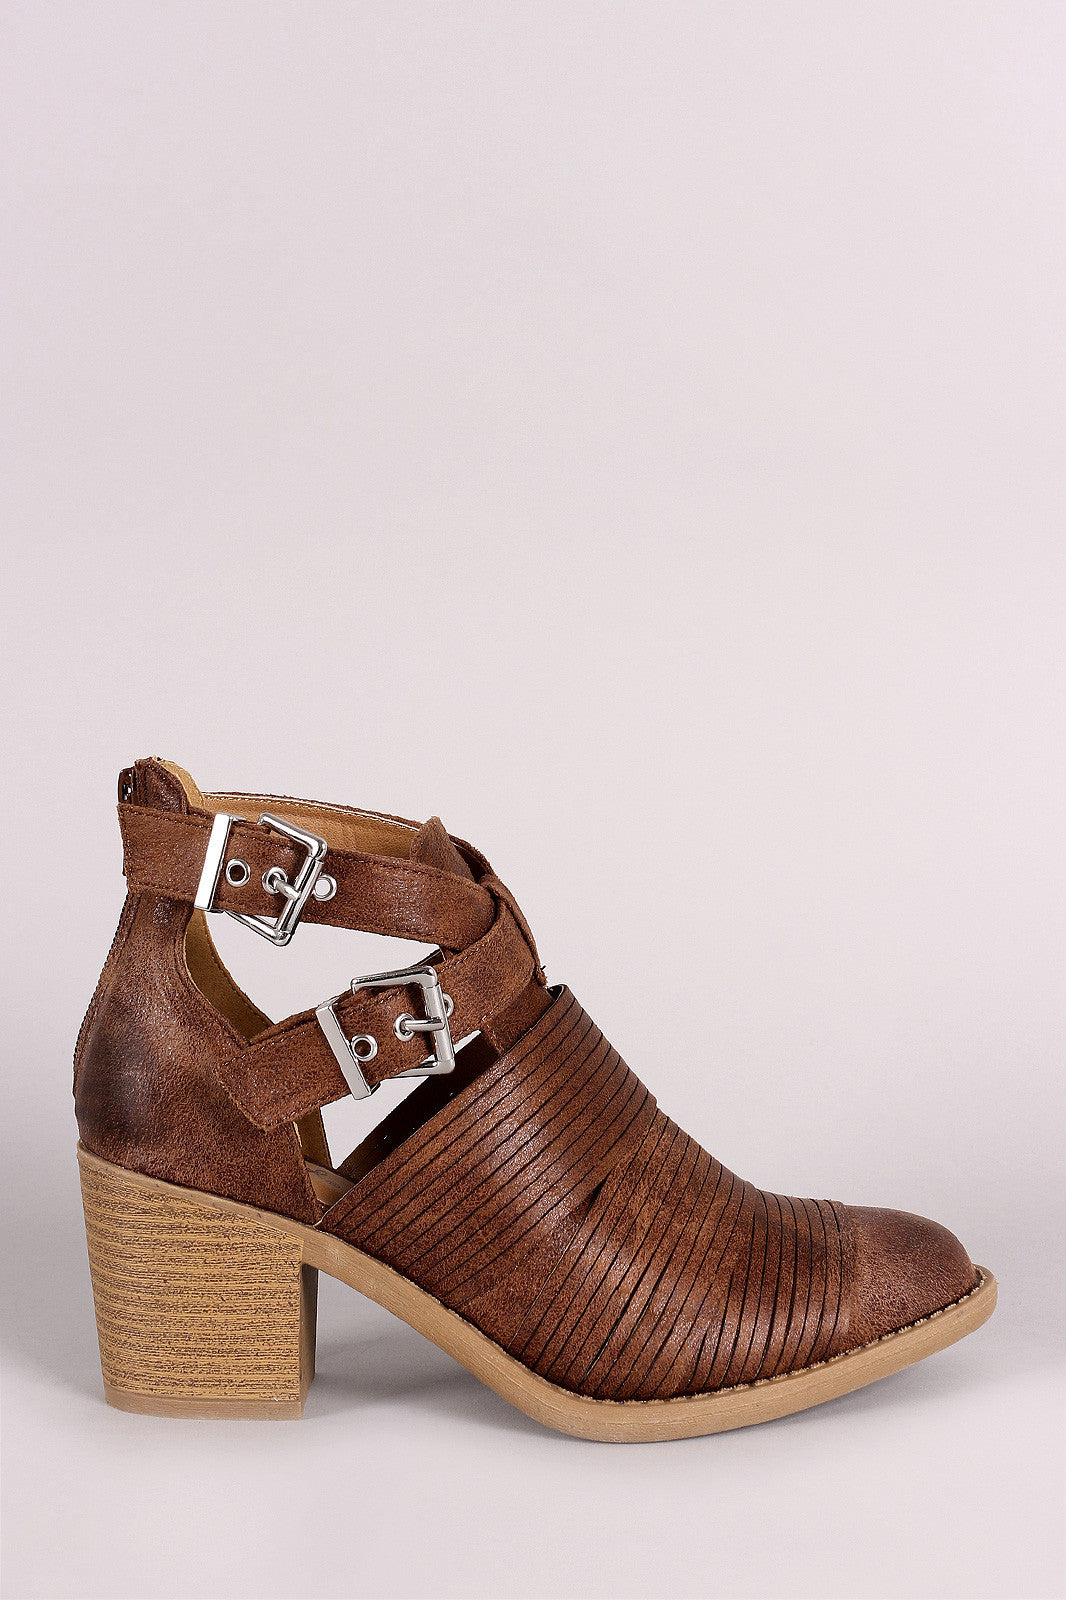 Qupid Slashed Crisscross Buckled Strap Chunky Heeled Ankle Boots - Thick 'N' Curvy Shop - 10